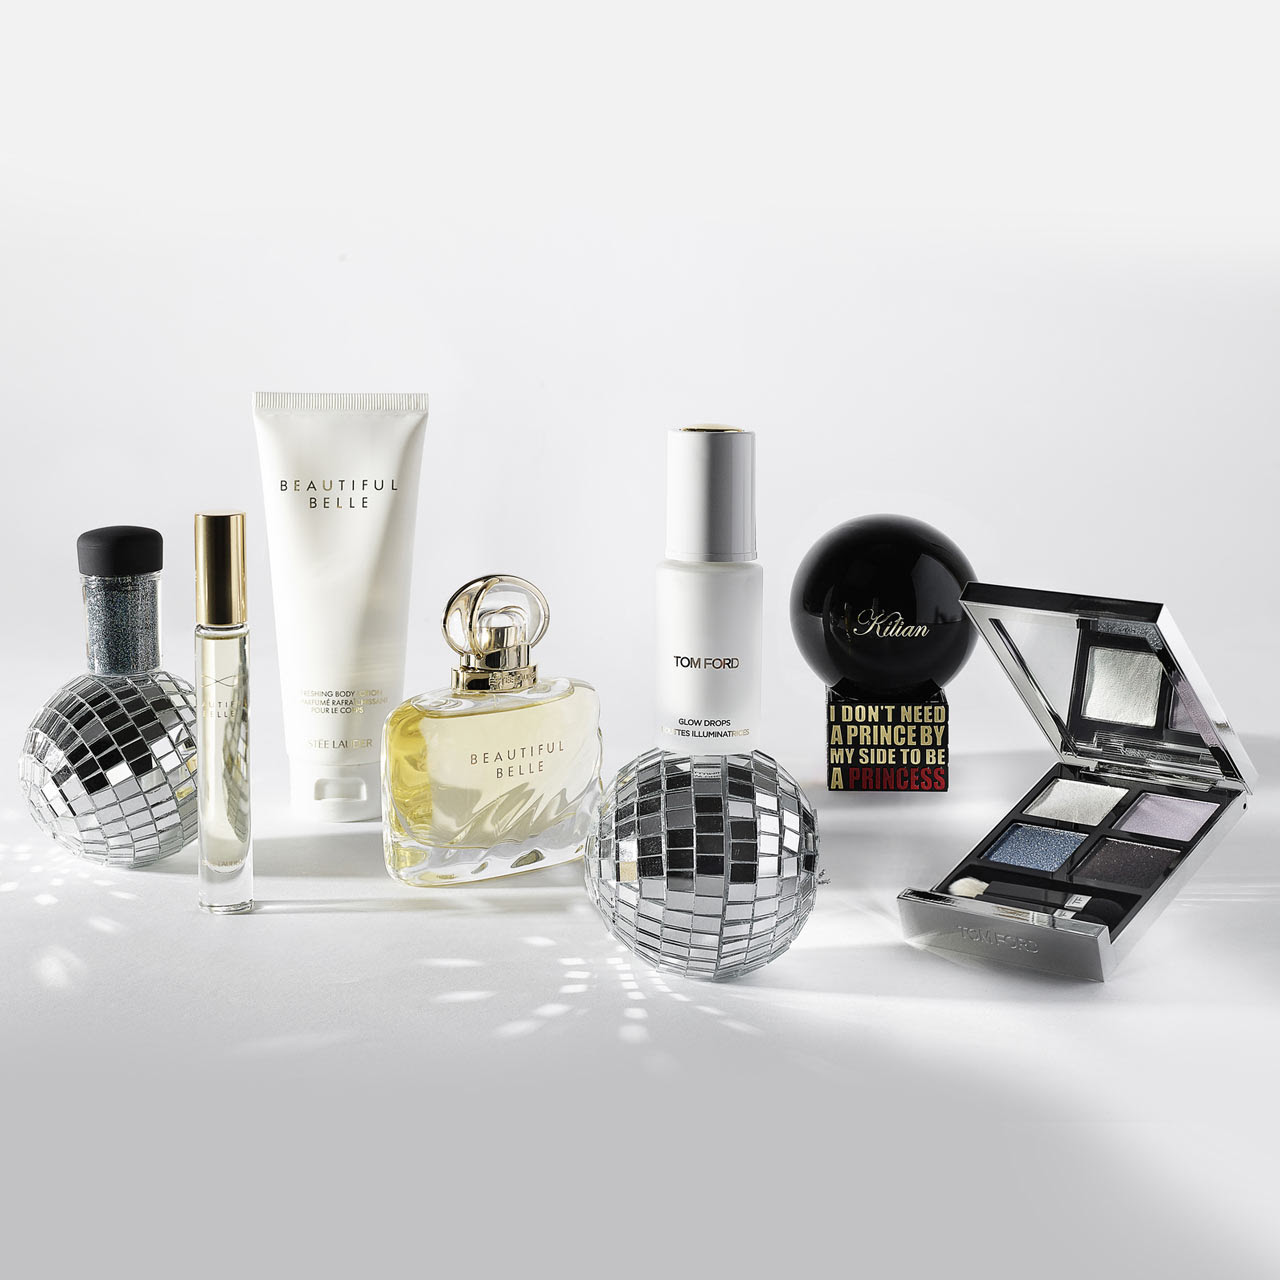 Brown Thomas - Make a beauty gift-list, check it twice